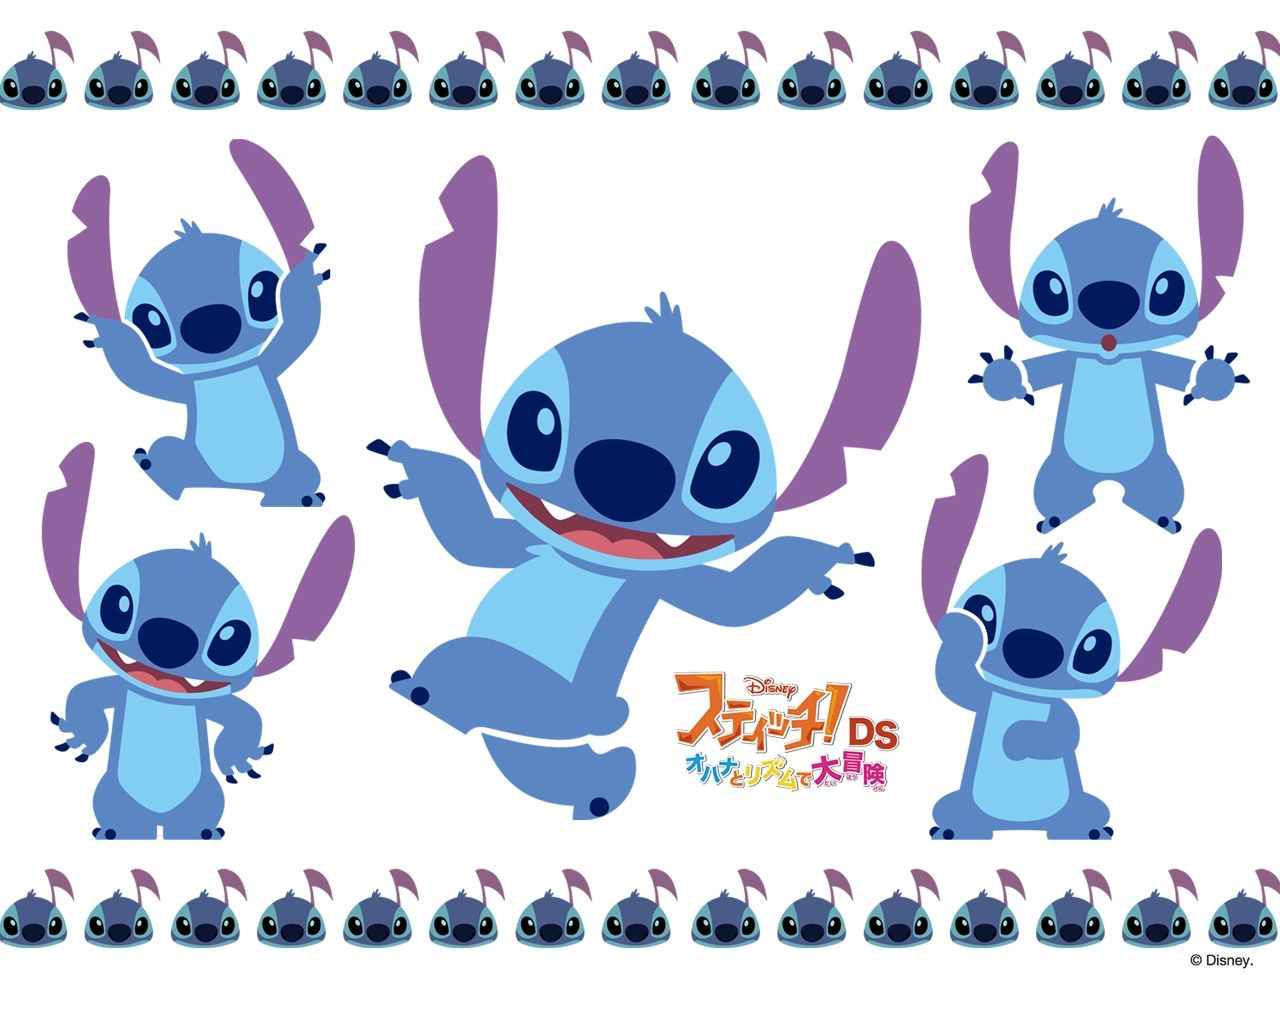 "1920x1080 Lilo and Stitch wallpaper ·① Download free beautiful backgrounds ..."">"